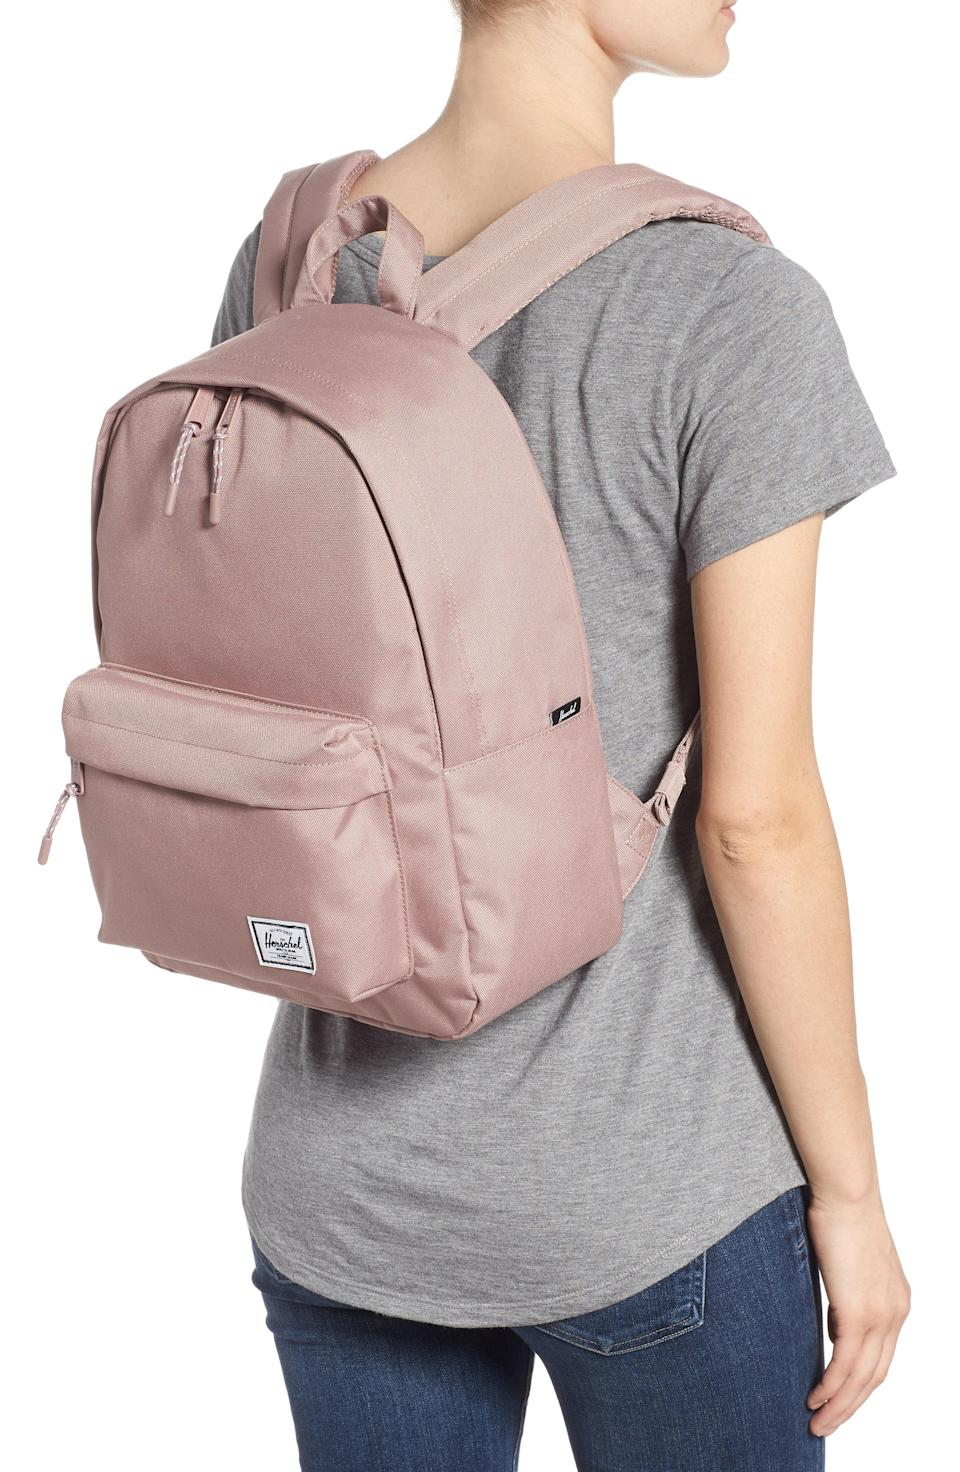 """<p><strong>HERSCHEL SUPPLY CO.</strong></p><p>nordstrom.com</p><p><strong>$45.00</strong></p><p><a href=""""https://go.redirectingat.com?id=74968X1596630&url=https%3A%2F%2Fshop.nordstrom.com%2Fs%2Fherschel-supply-co-classic-mid-volume-backpack%2F4909558&sref=https%3A%2F%2Fwww.womansday.com%2Flife%2Fg955%2Fcheap-gifts-for-women%2F"""" rel=""""nofollow noopener"""" target=""""_blank"""" data-ylk=""""slk:Shop Now"""" class=""""link rapid-noclick-resp"""">Shop Now</a></p><p>Cute enough to grab on the go, but comfortable enough to keep her going all day long.</p>"""